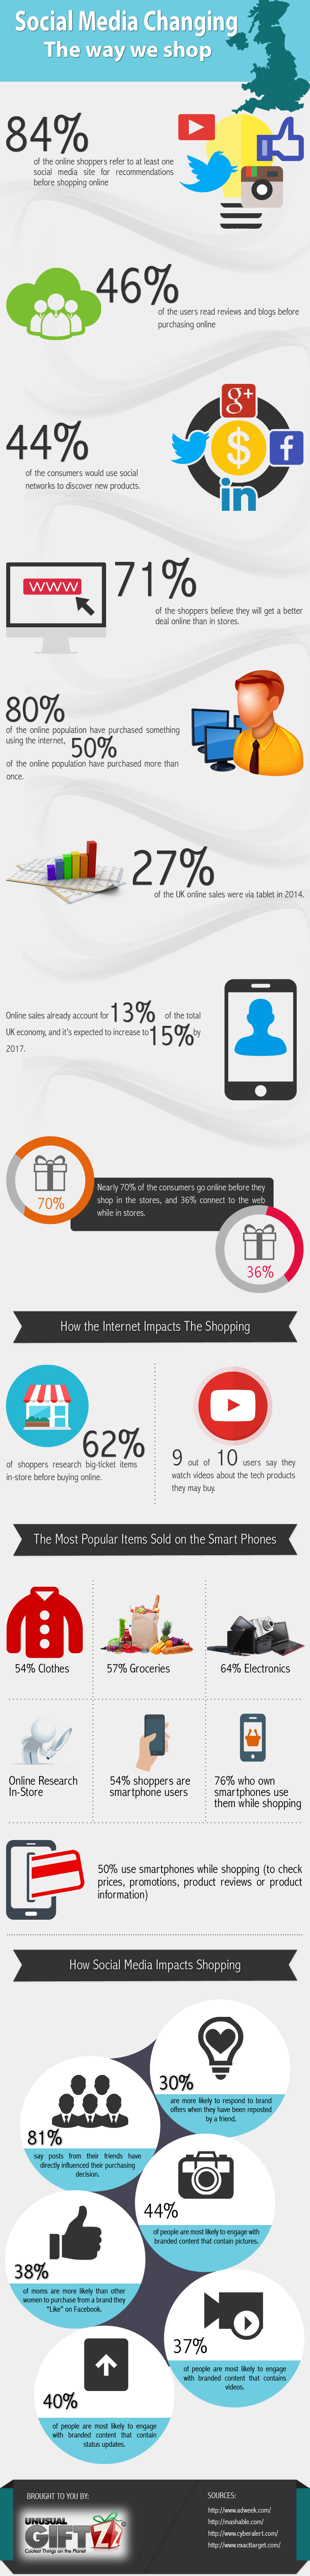 Social Media Changing the Way We Shop - Image 1